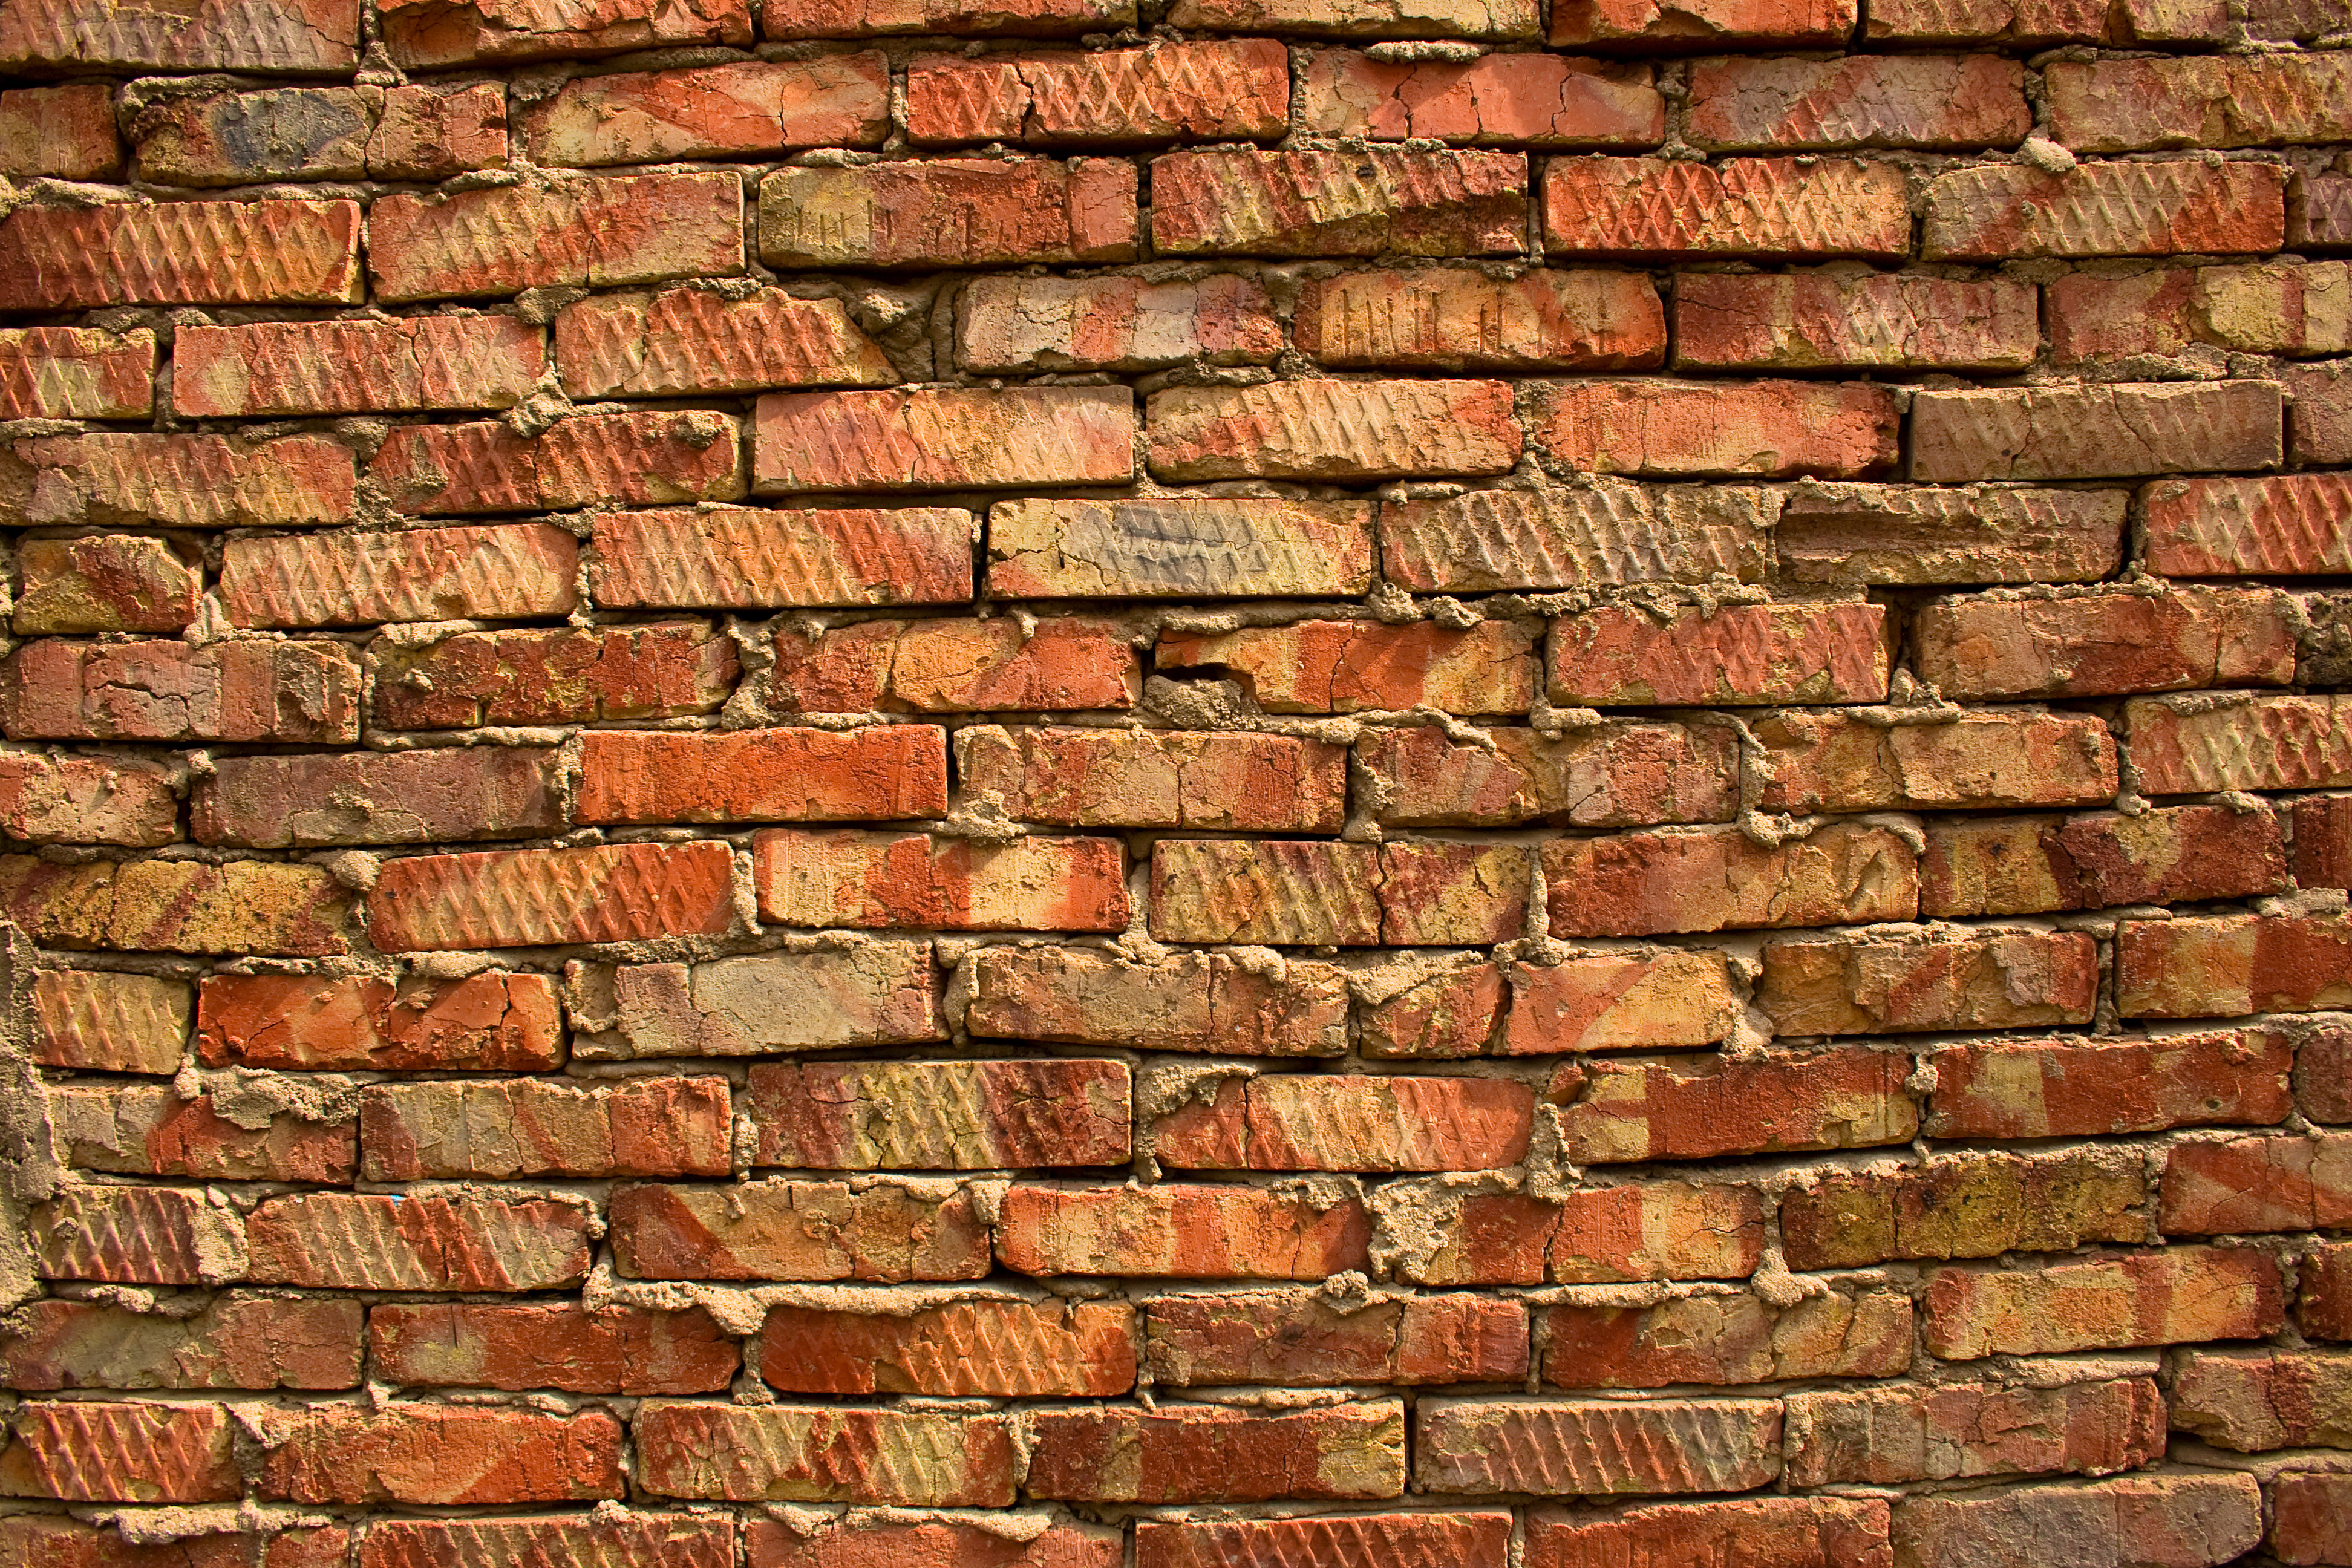 Old Brick Wall, Backgrounds, Stonewall, Revetment, Rock-wall, HQ Photo